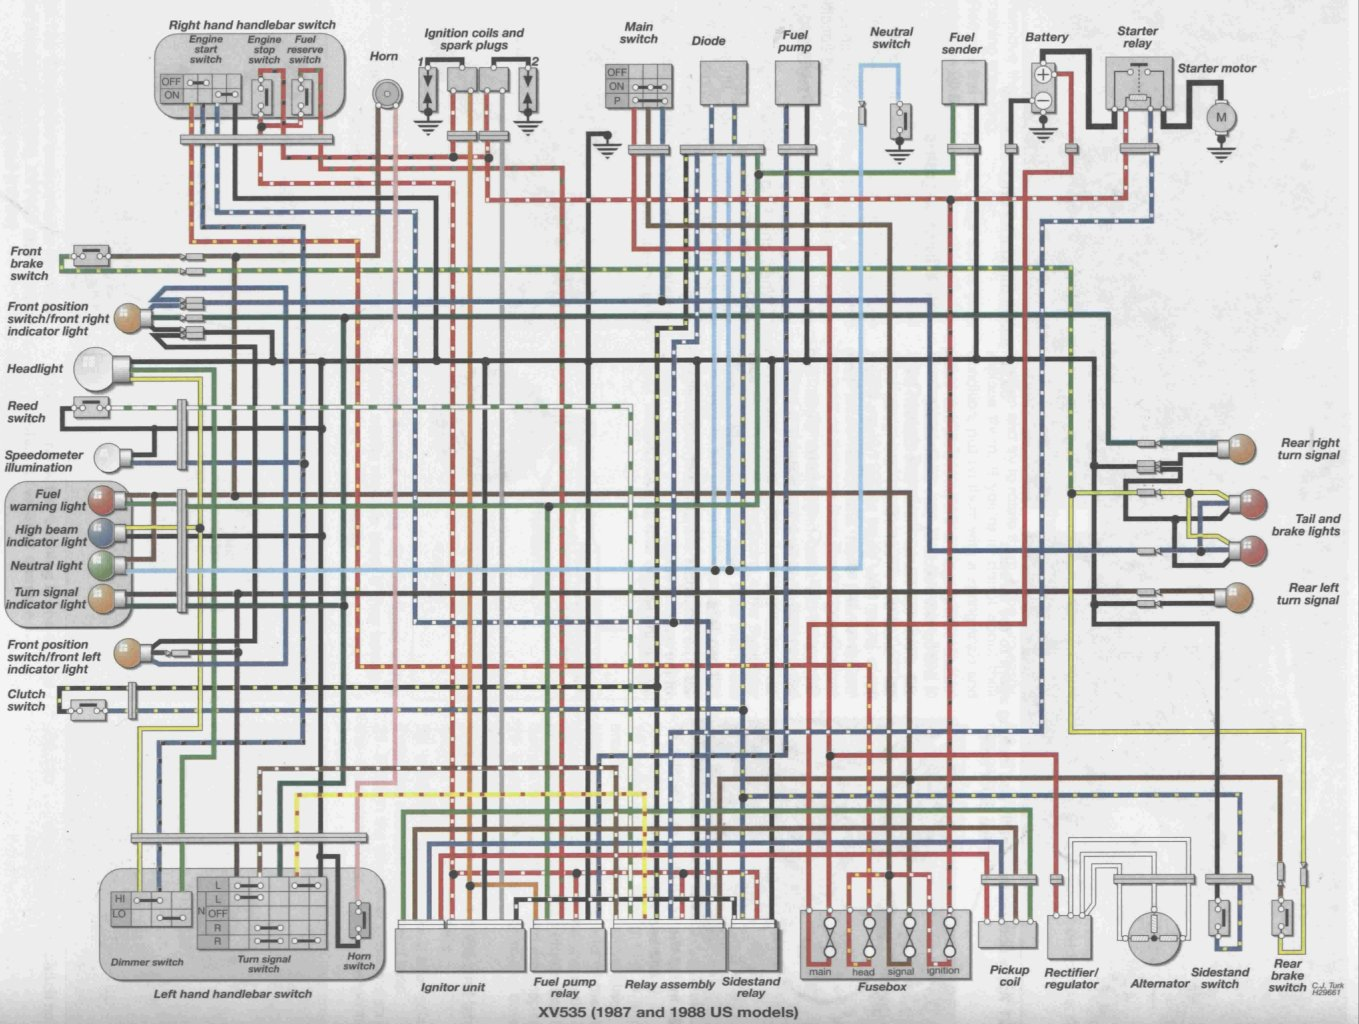 WRG-8679] 82 Xv920 Wiring Diagram on